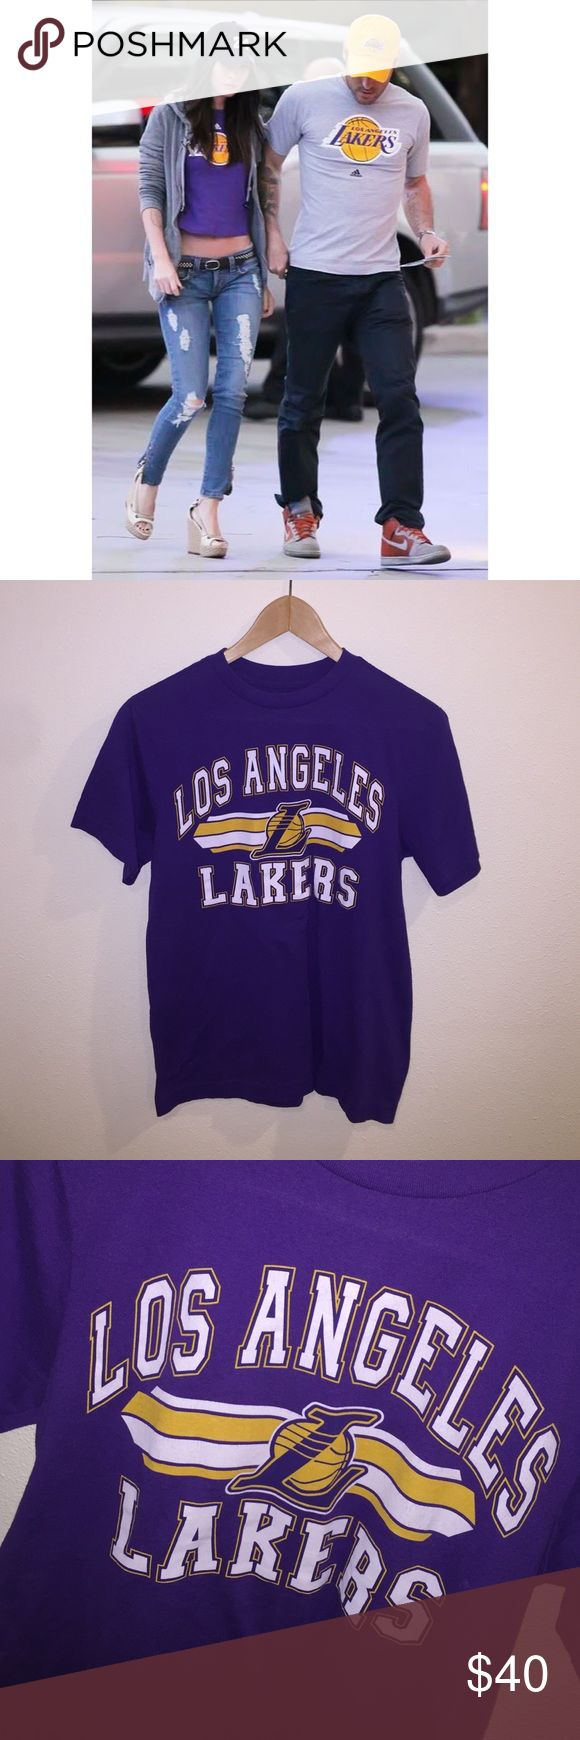 [Vintage] •Los Angeles Lakers T-Shirt• Awesome Deadstock Vintage L.A. Lakers T-Shirt in great condition. Women's size XL. I may cut this into a crop top - please let me know if you'd be interested in that. Vintage Tops Tees - Short Sleeve